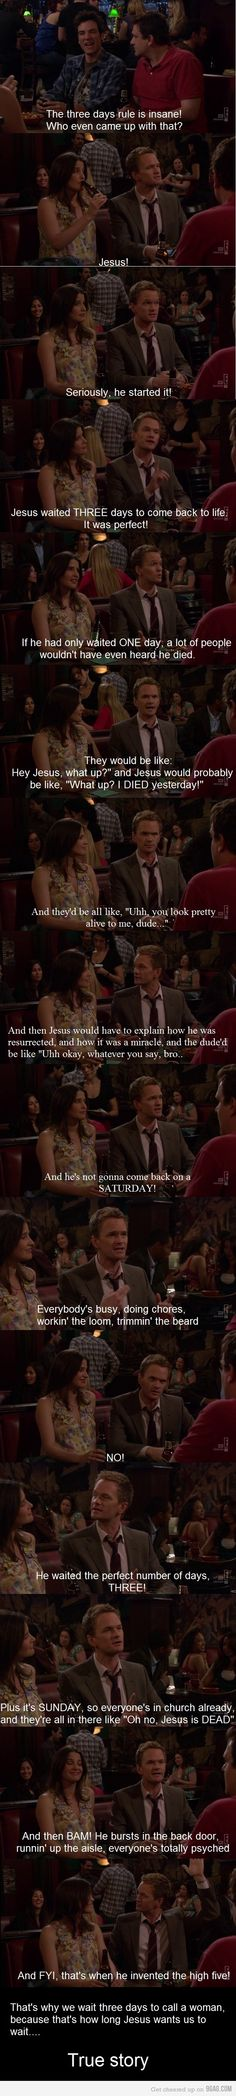 Why the 3 day rule exists. HIMYM.